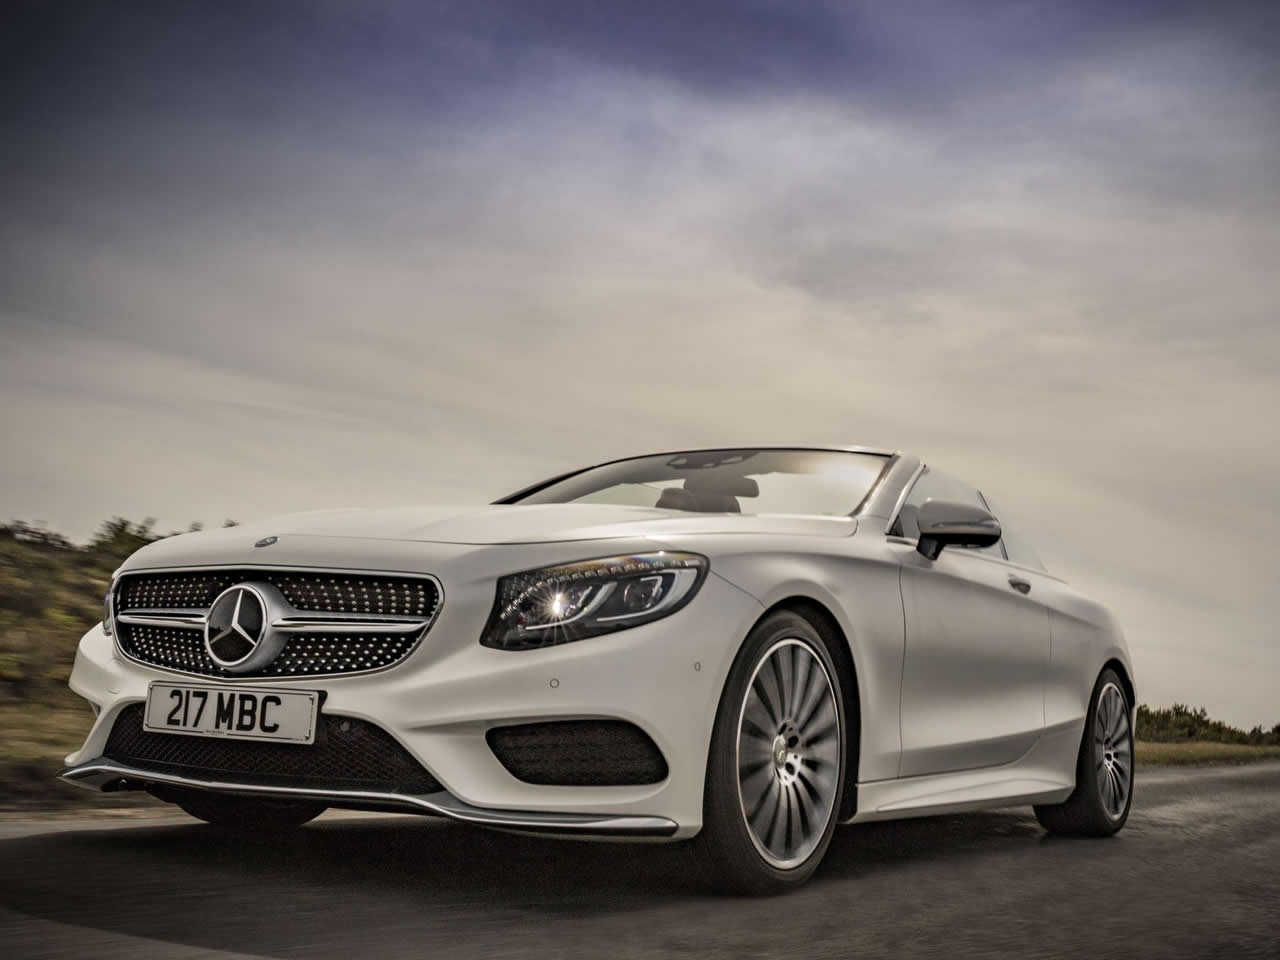 Mercedes-Benz S-Class Cabriolet Buying Guide